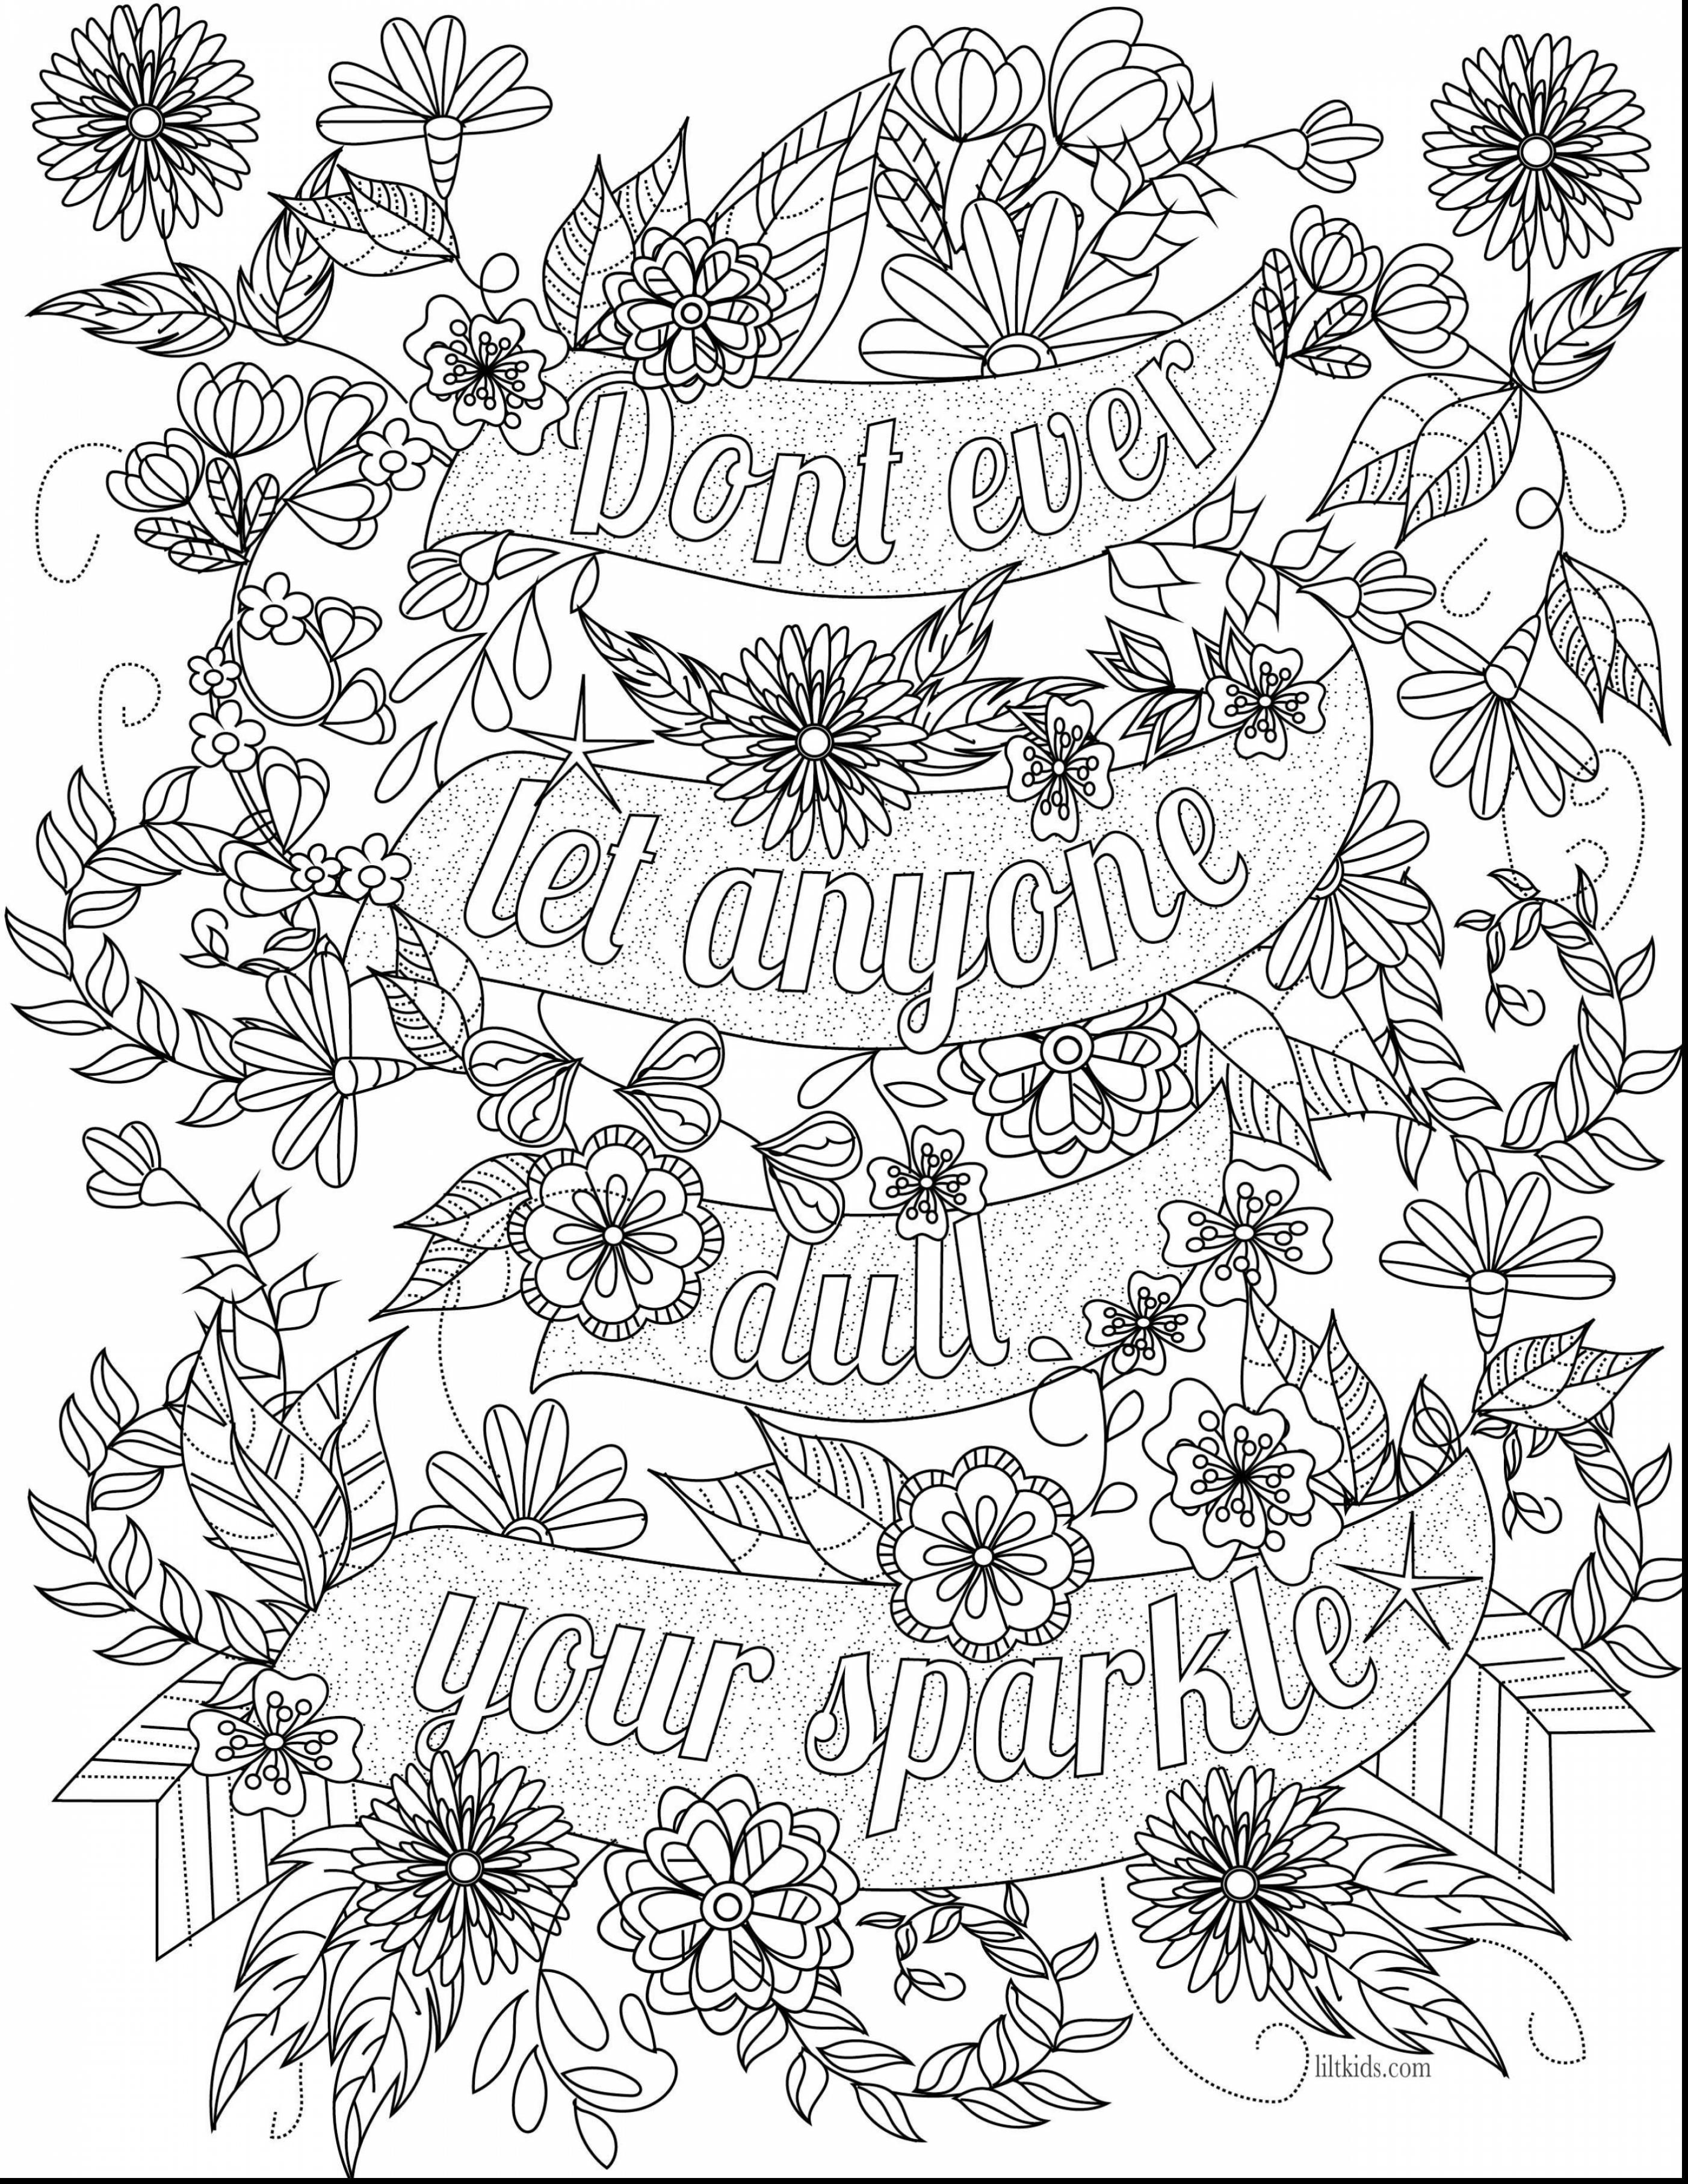 Remarkable Inspirational Adult Coloring Book Pages With Quotes